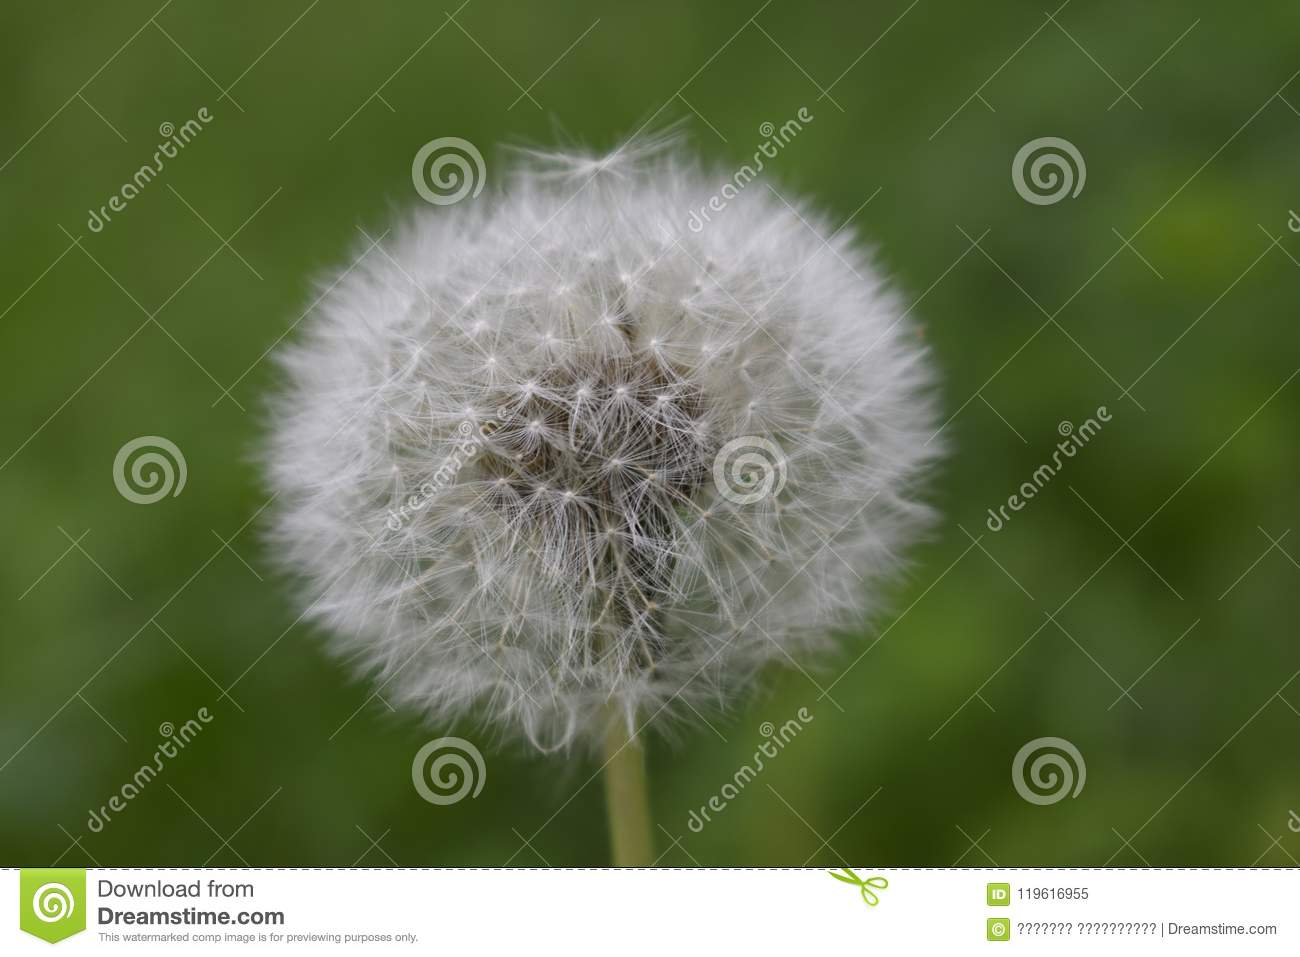 A dandelion flower head composed of numerous small florets top